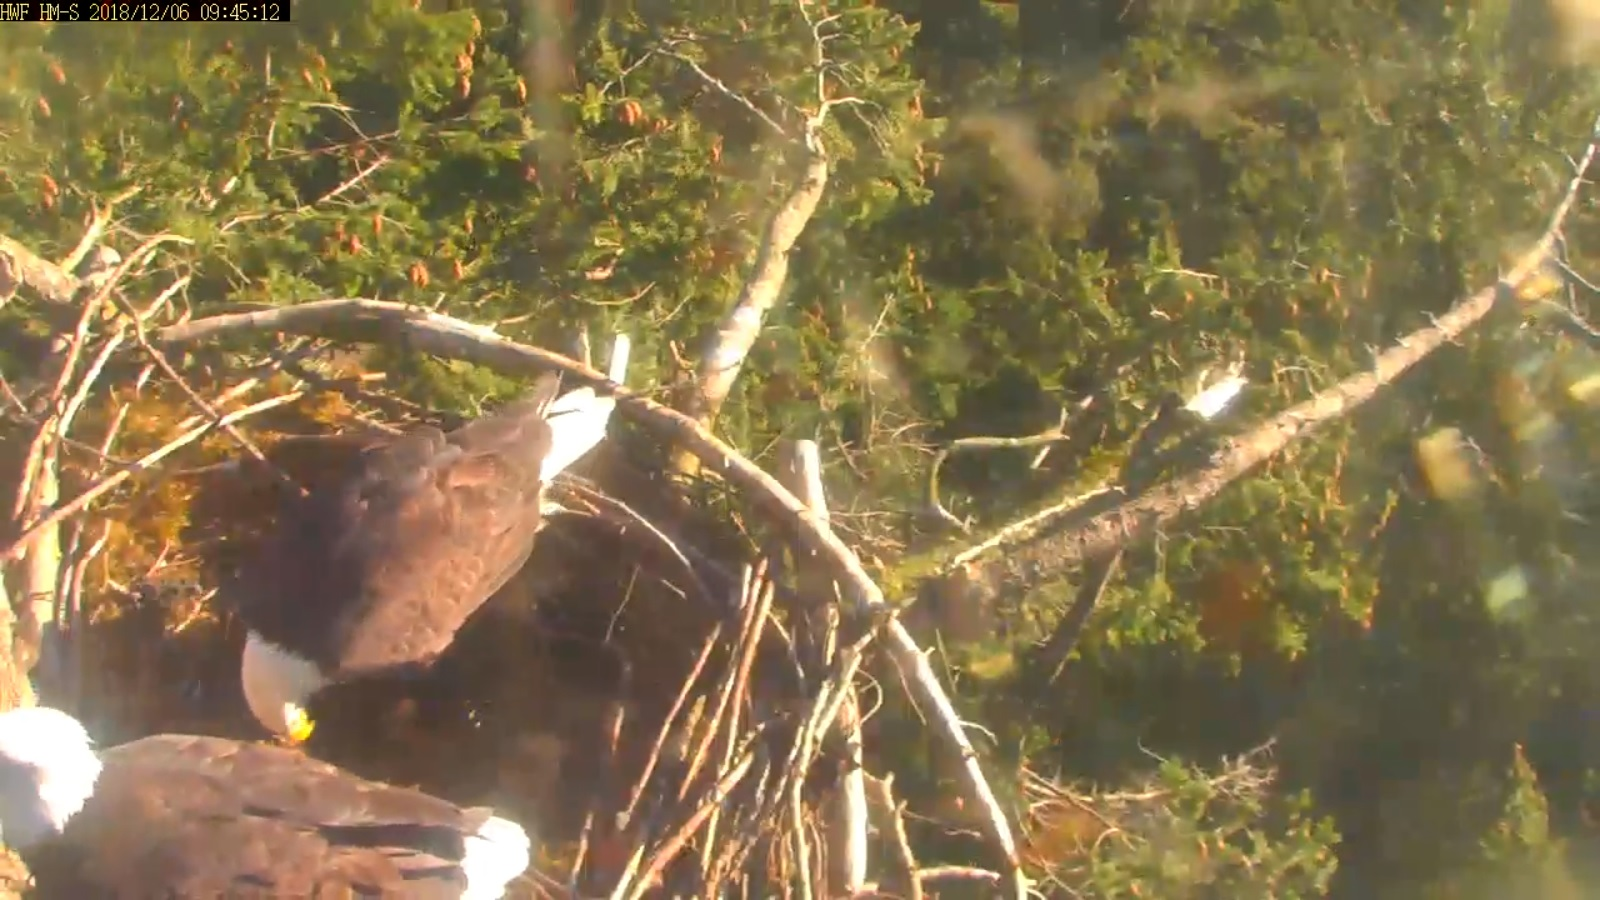 hm dad moved to rail lady in nest 9 45 dec 6 .jpg